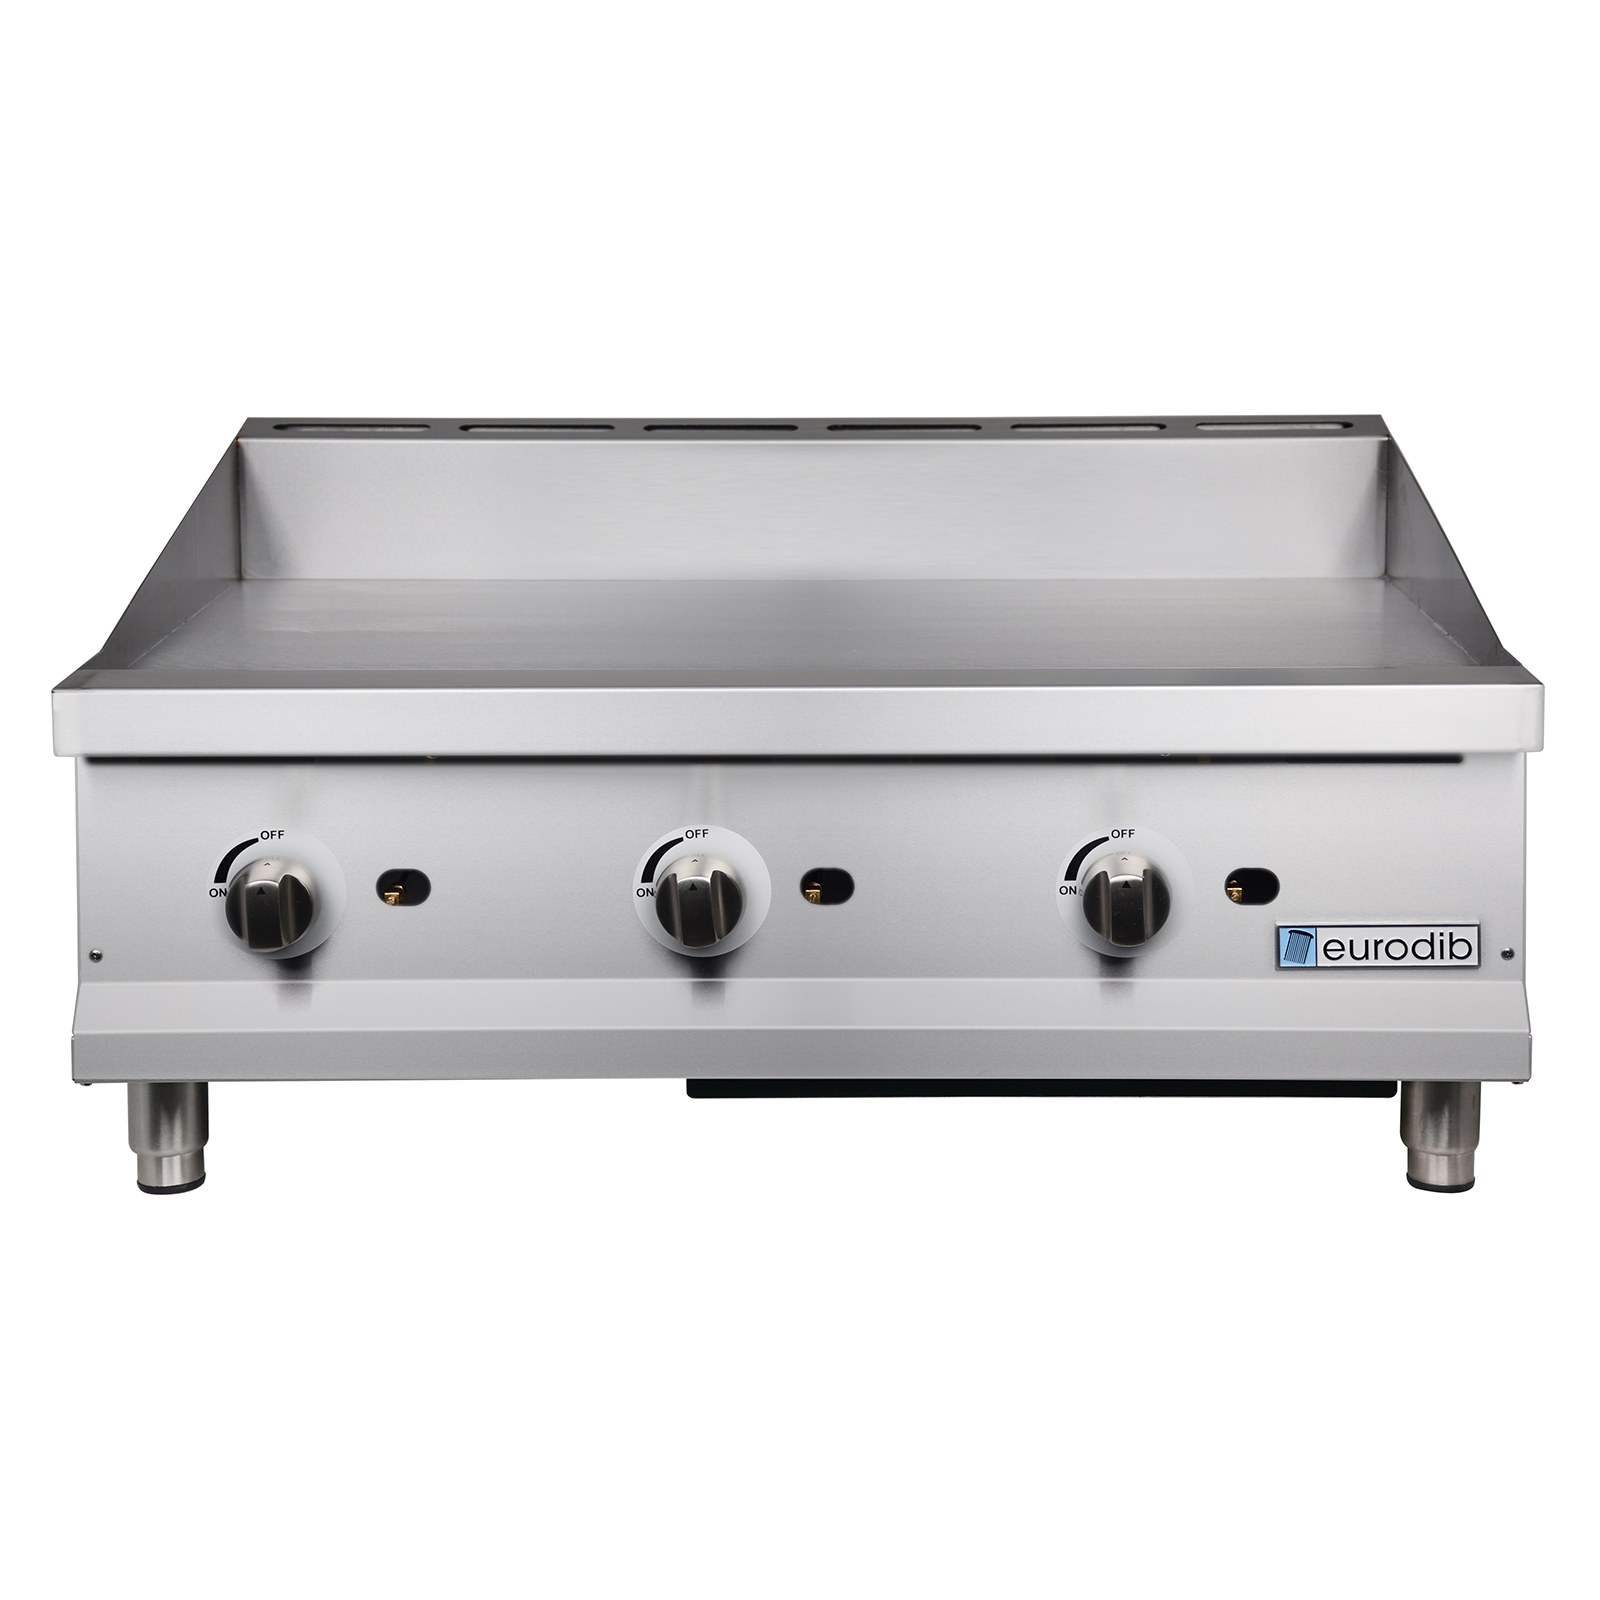 Eurodib USA T-G36 griddle, gas, countertop